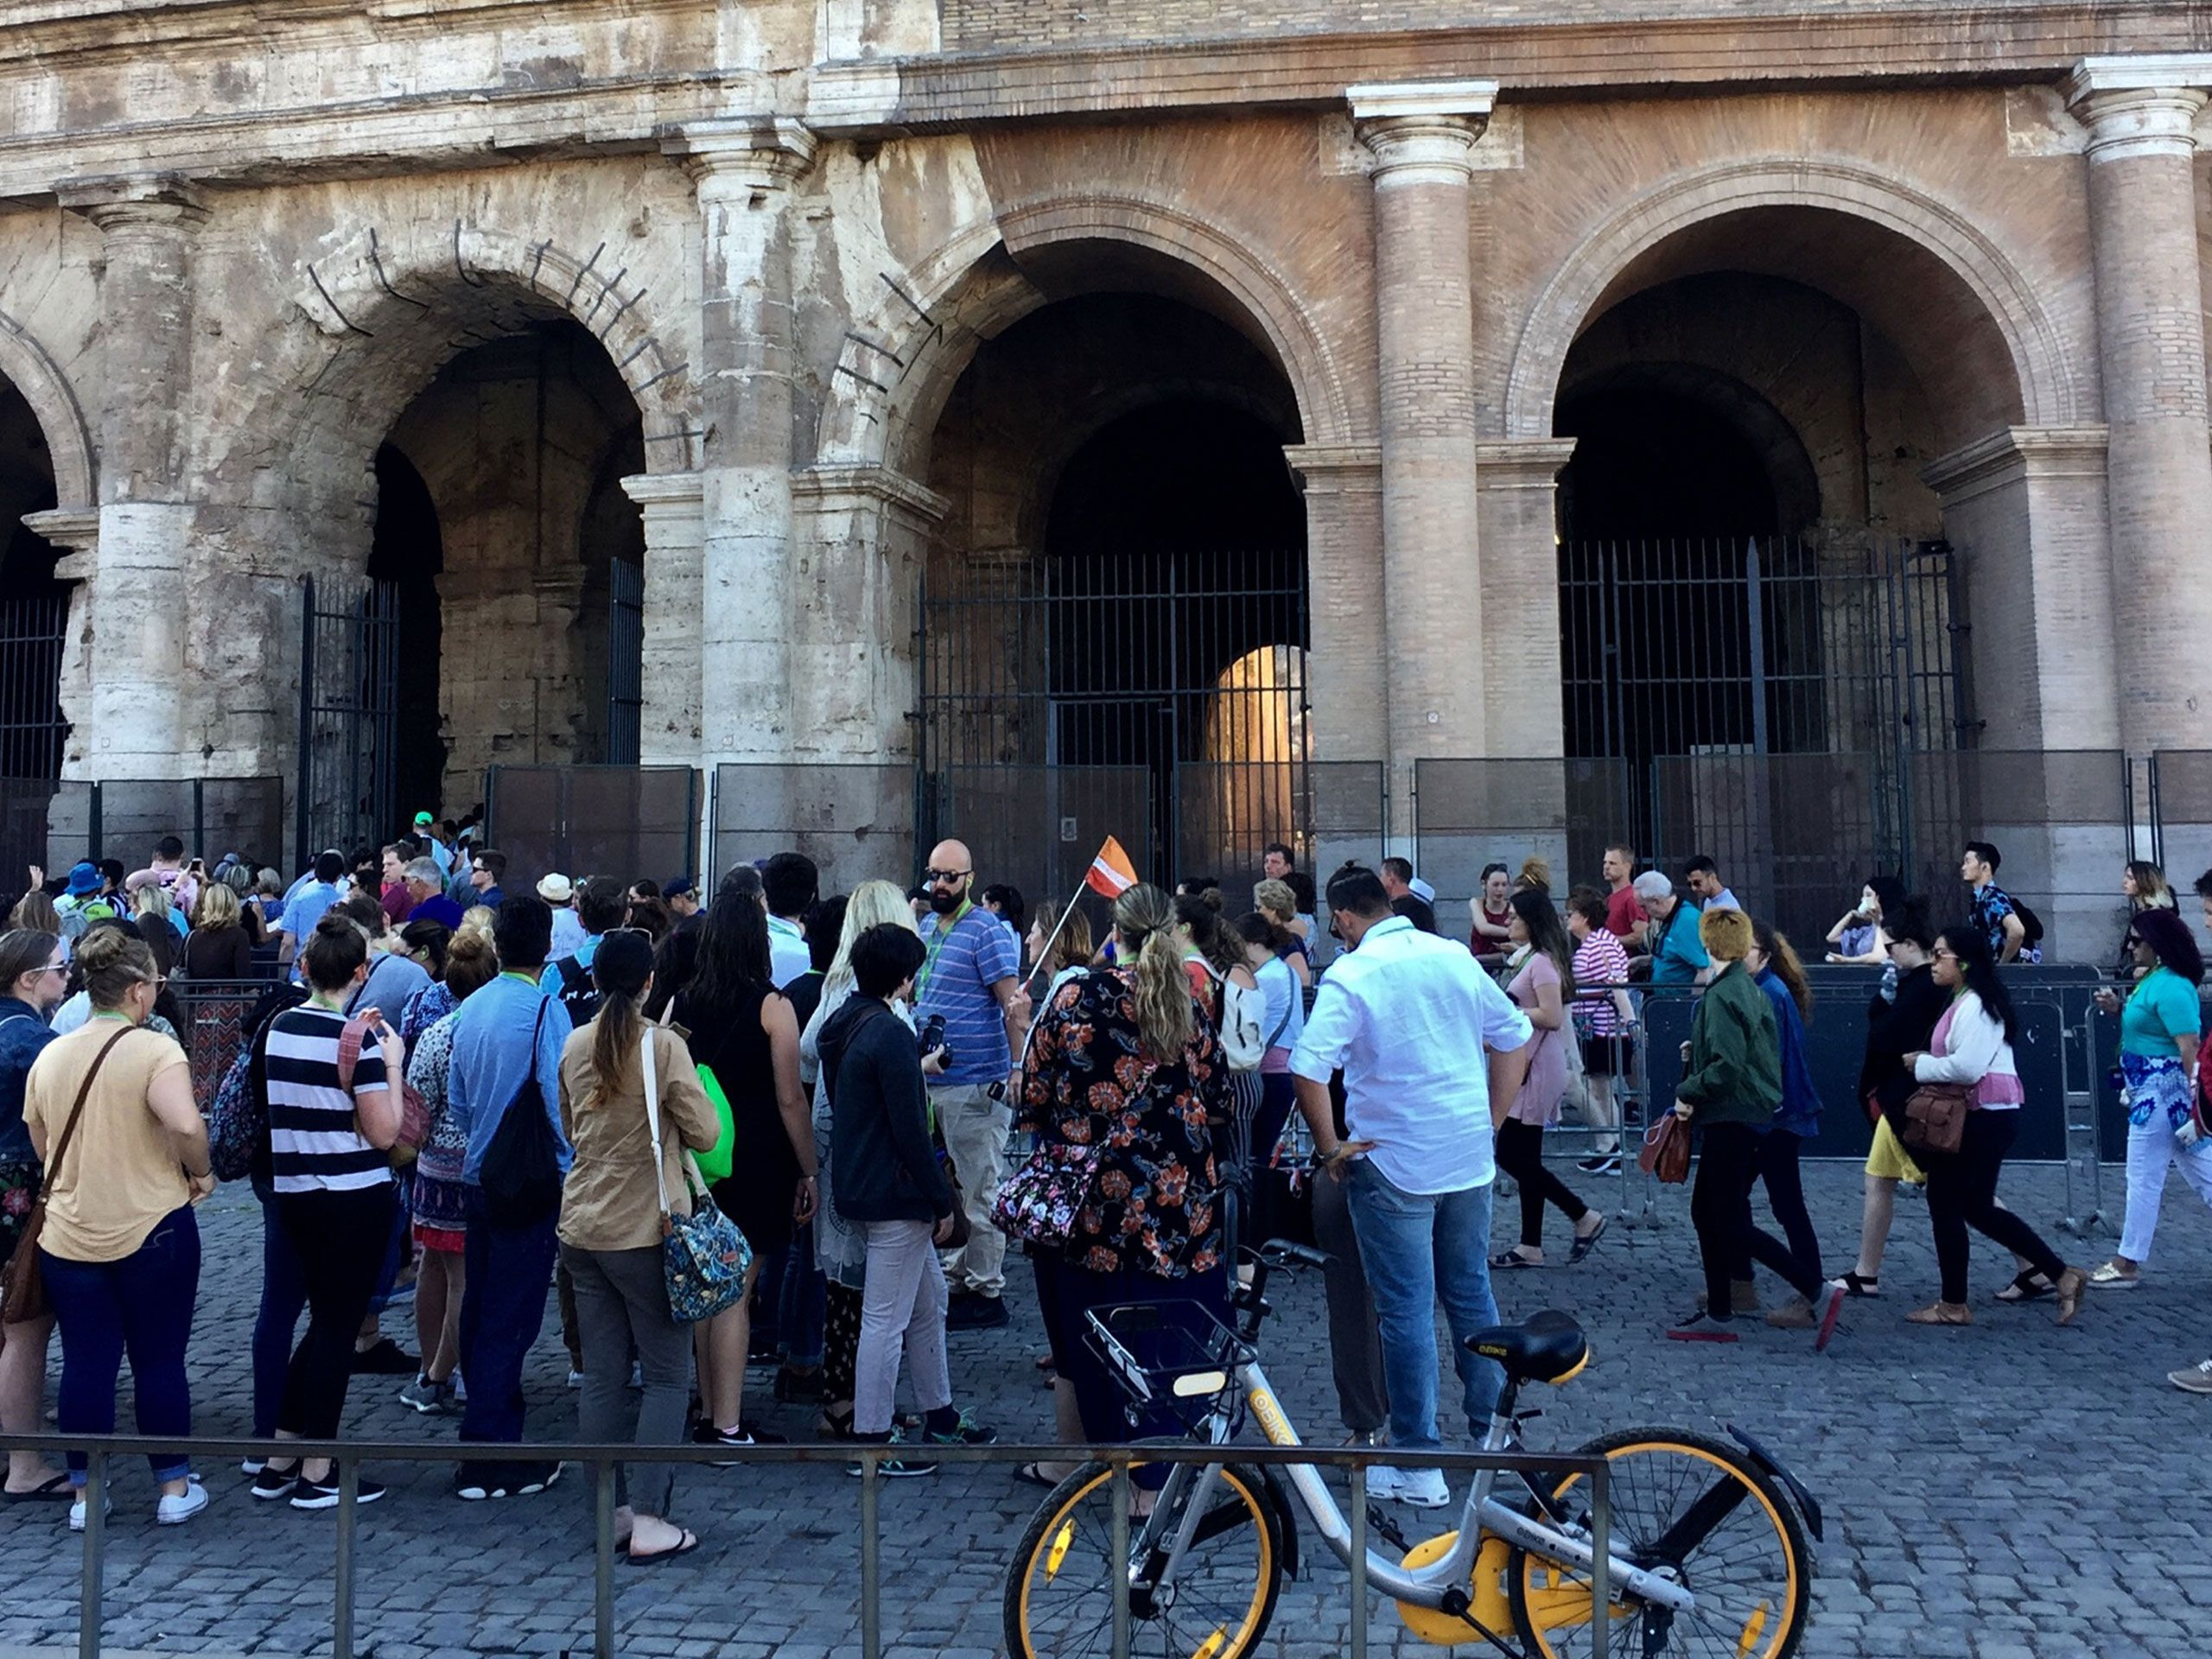 The long wait to get inside the Colosseum